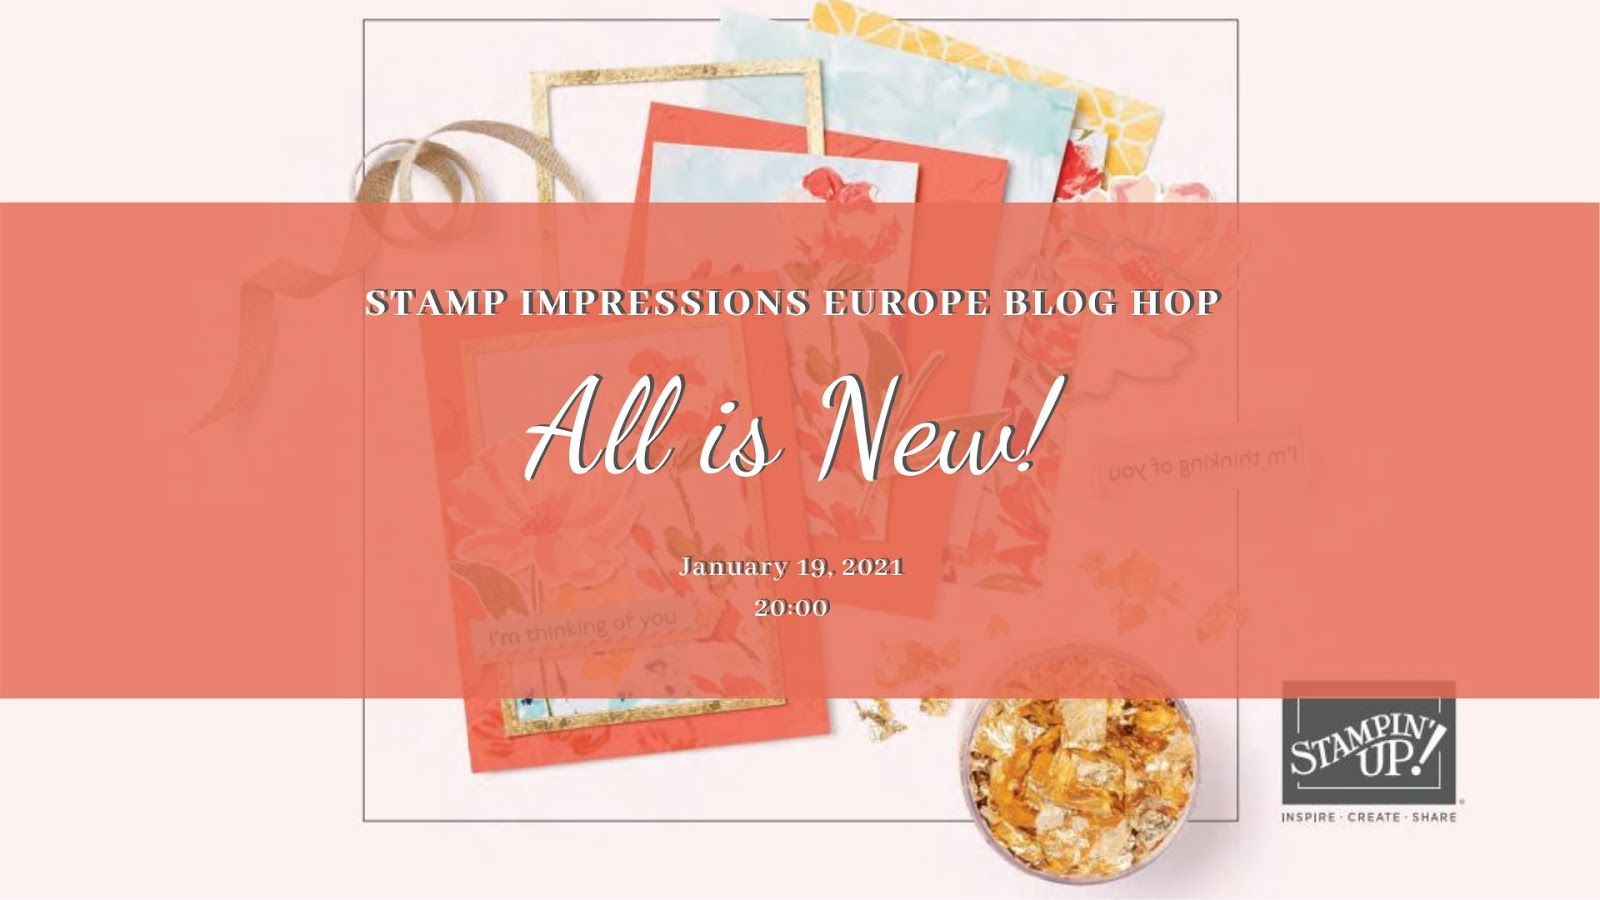 All is new – Stamp Impressions Europe Blog Hop